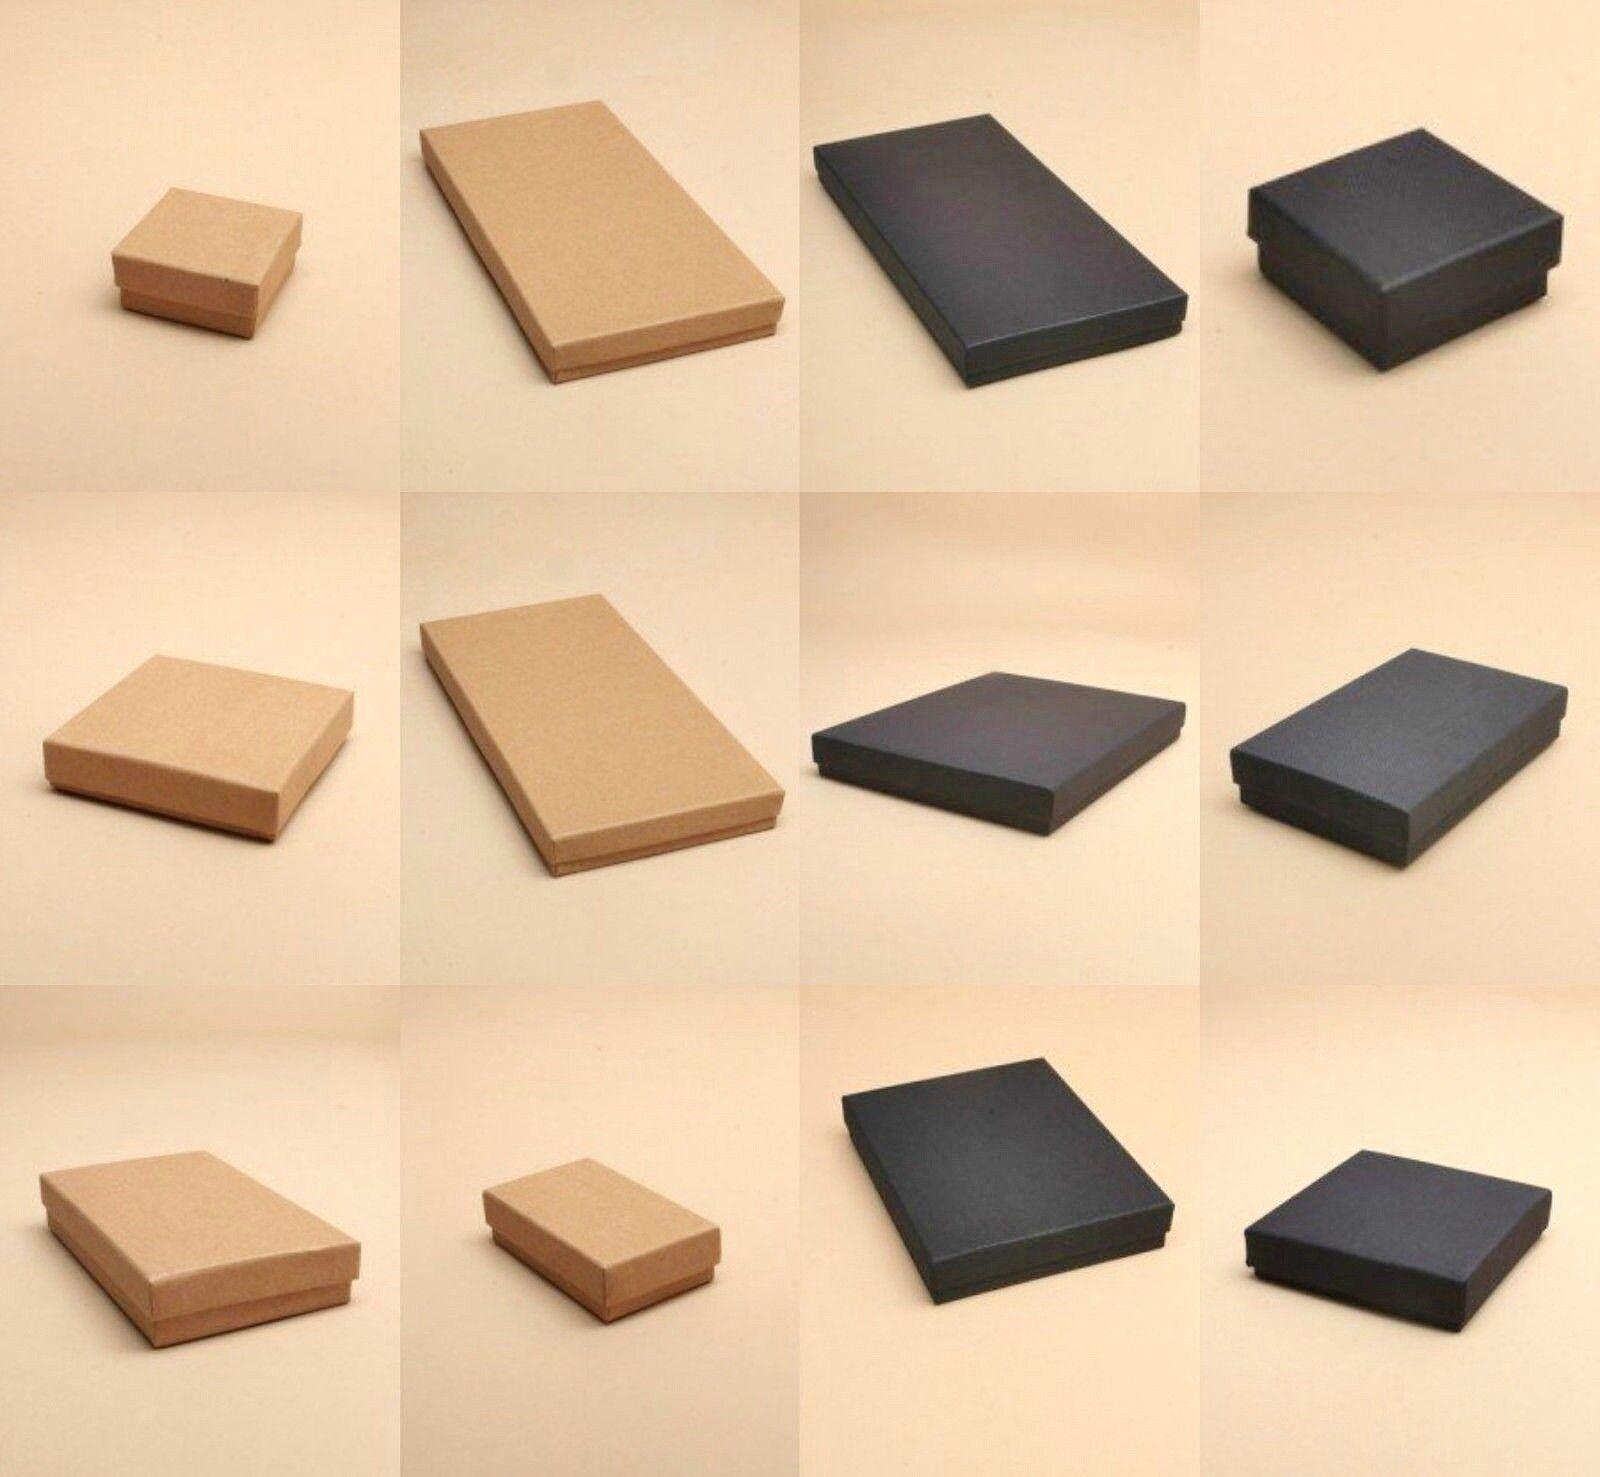 Jewellery - 12 x Top Quality Large Letter Boxes - Jewellery Gift Boxes  Necklace Bracelet